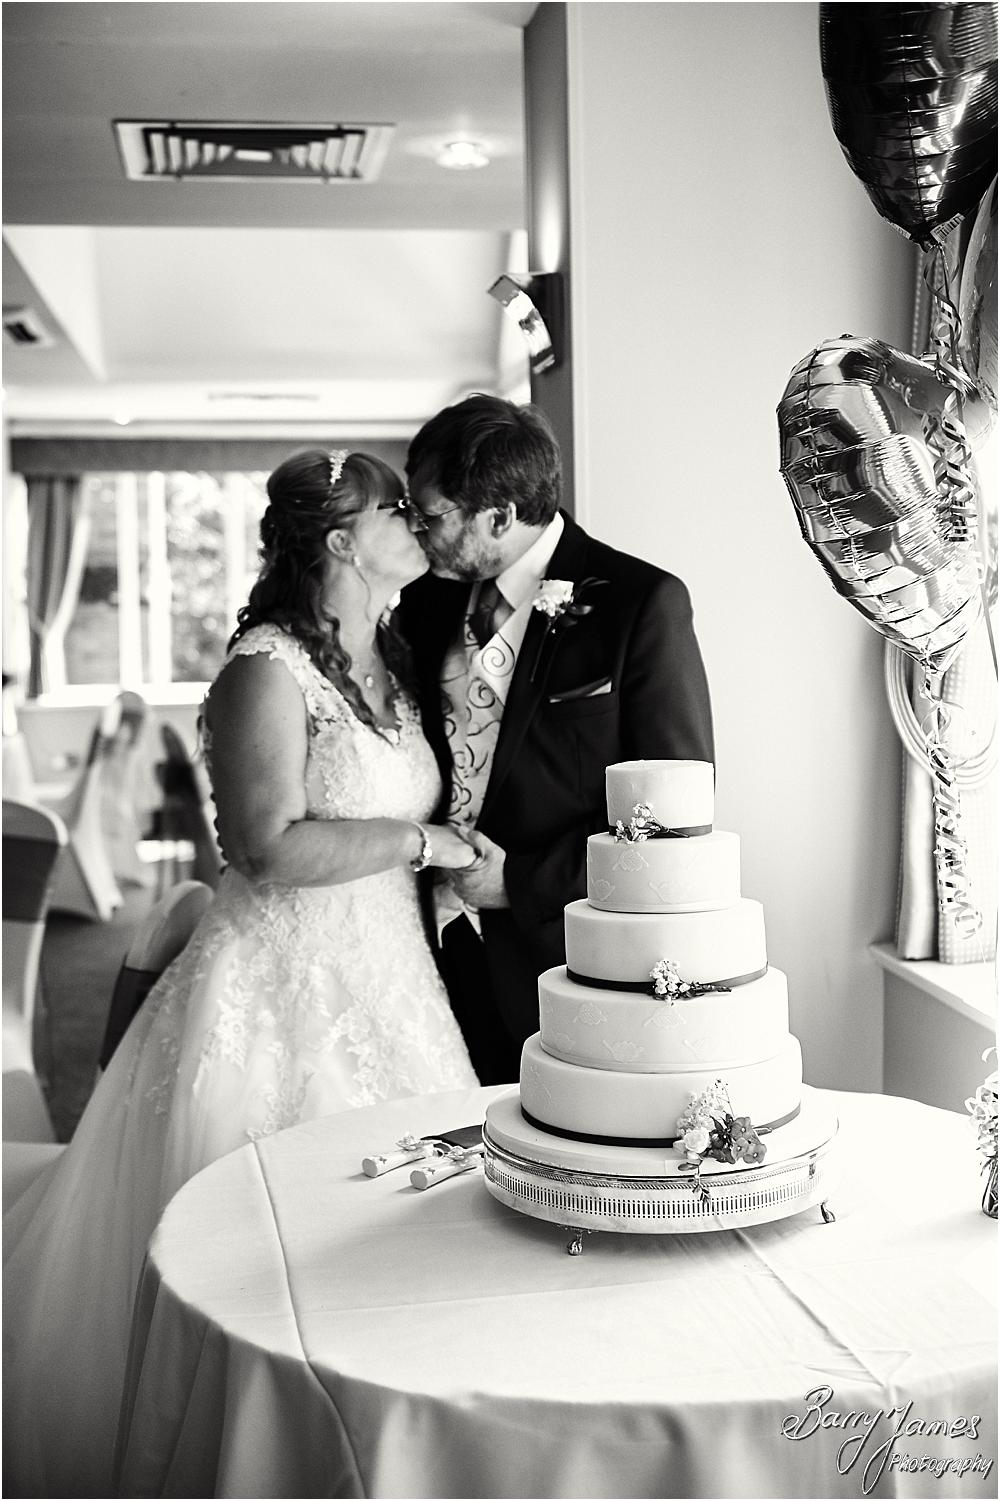 Cake cutting fun at Acton Trussell by Stafford Wedding Photographer Barry James